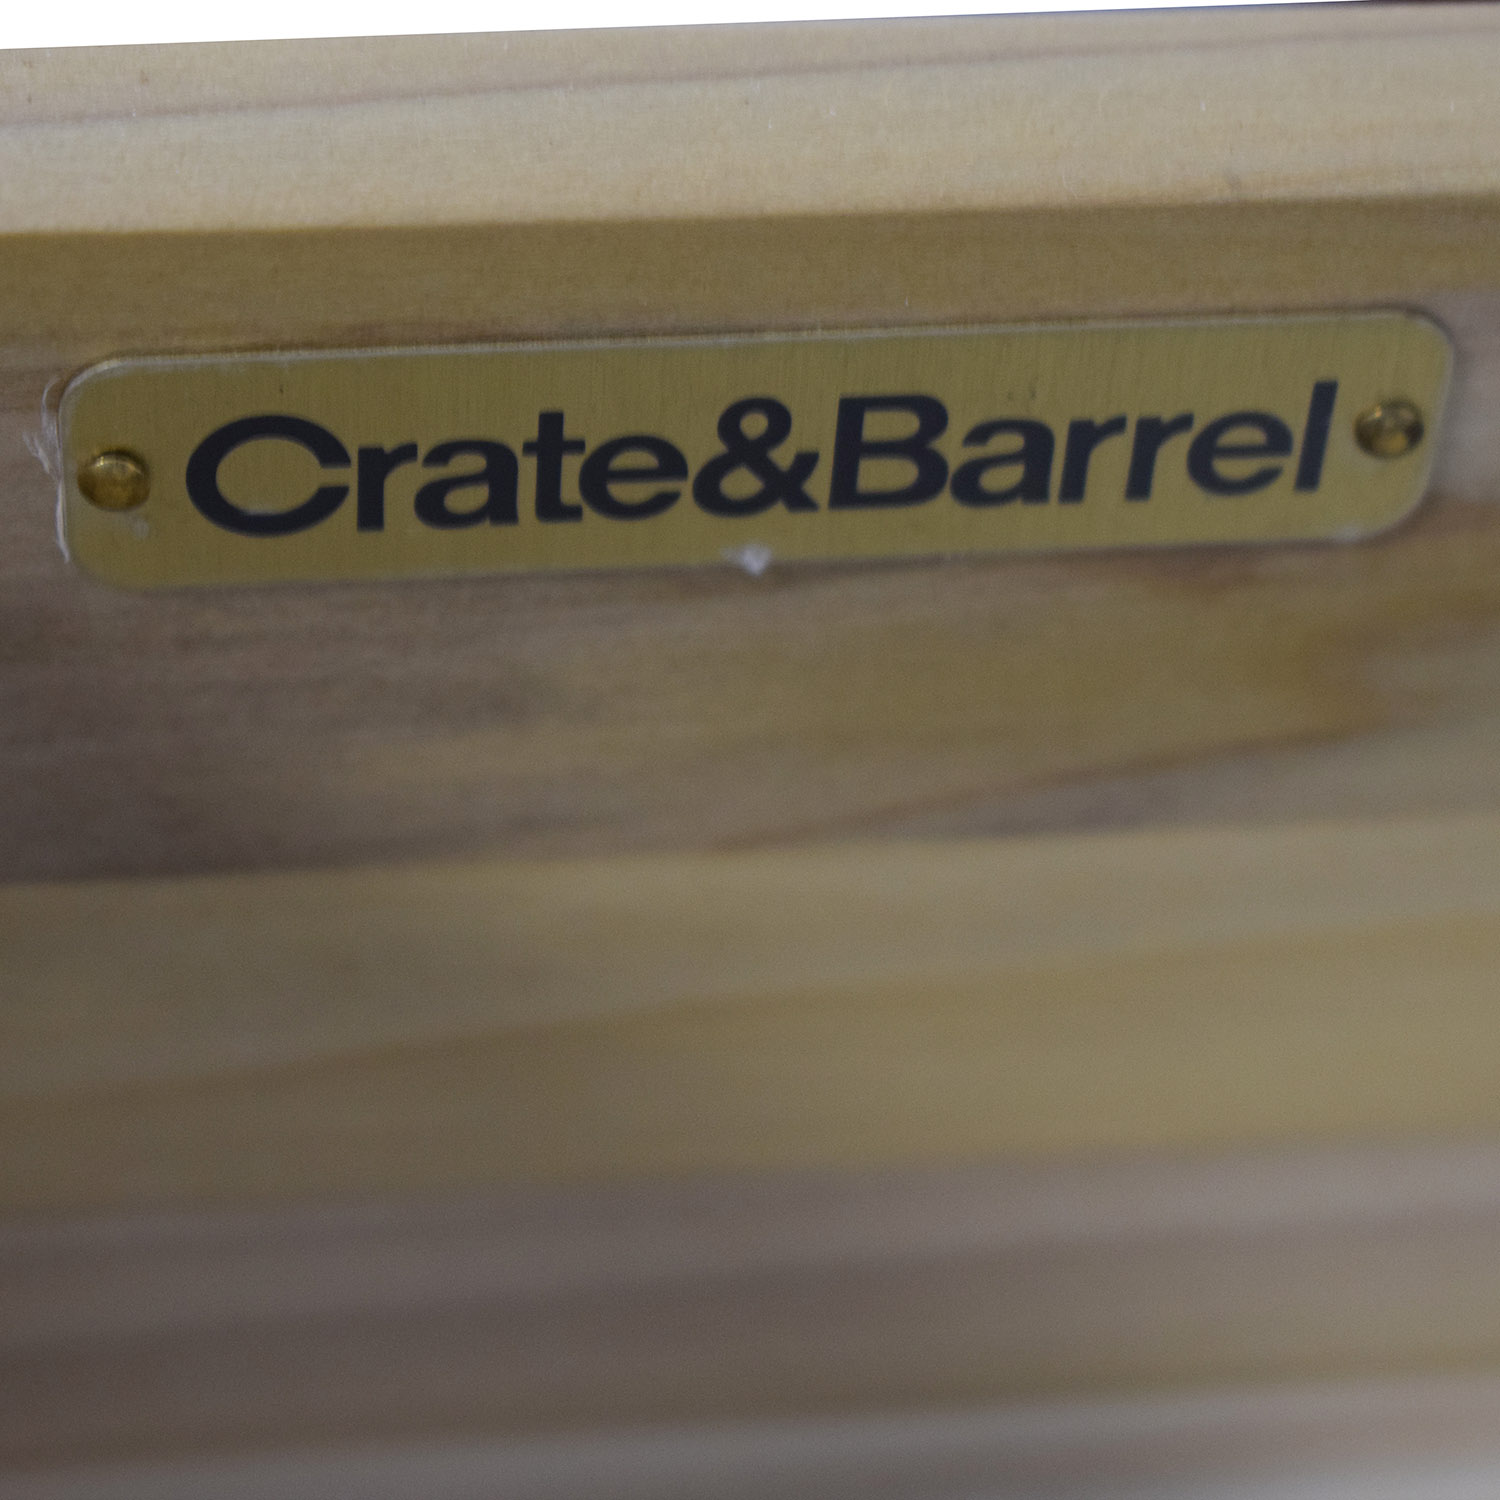 Crate & Barrel Crate & Barrel Single Drawer Nightstands discount